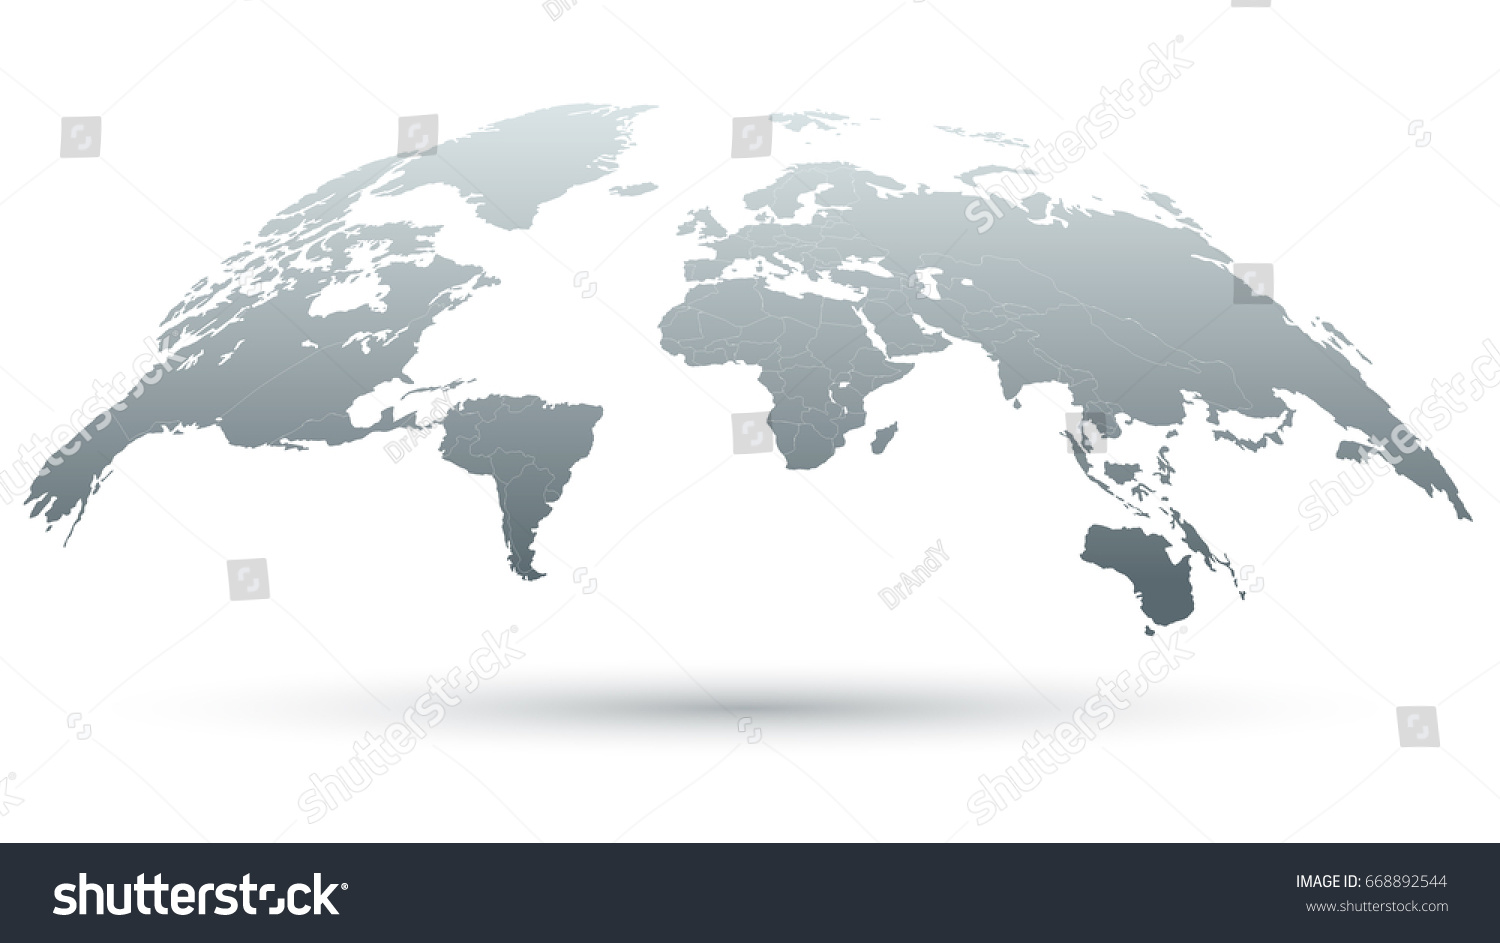 3d map world isolated on white stock vector 668892544 shutterstock